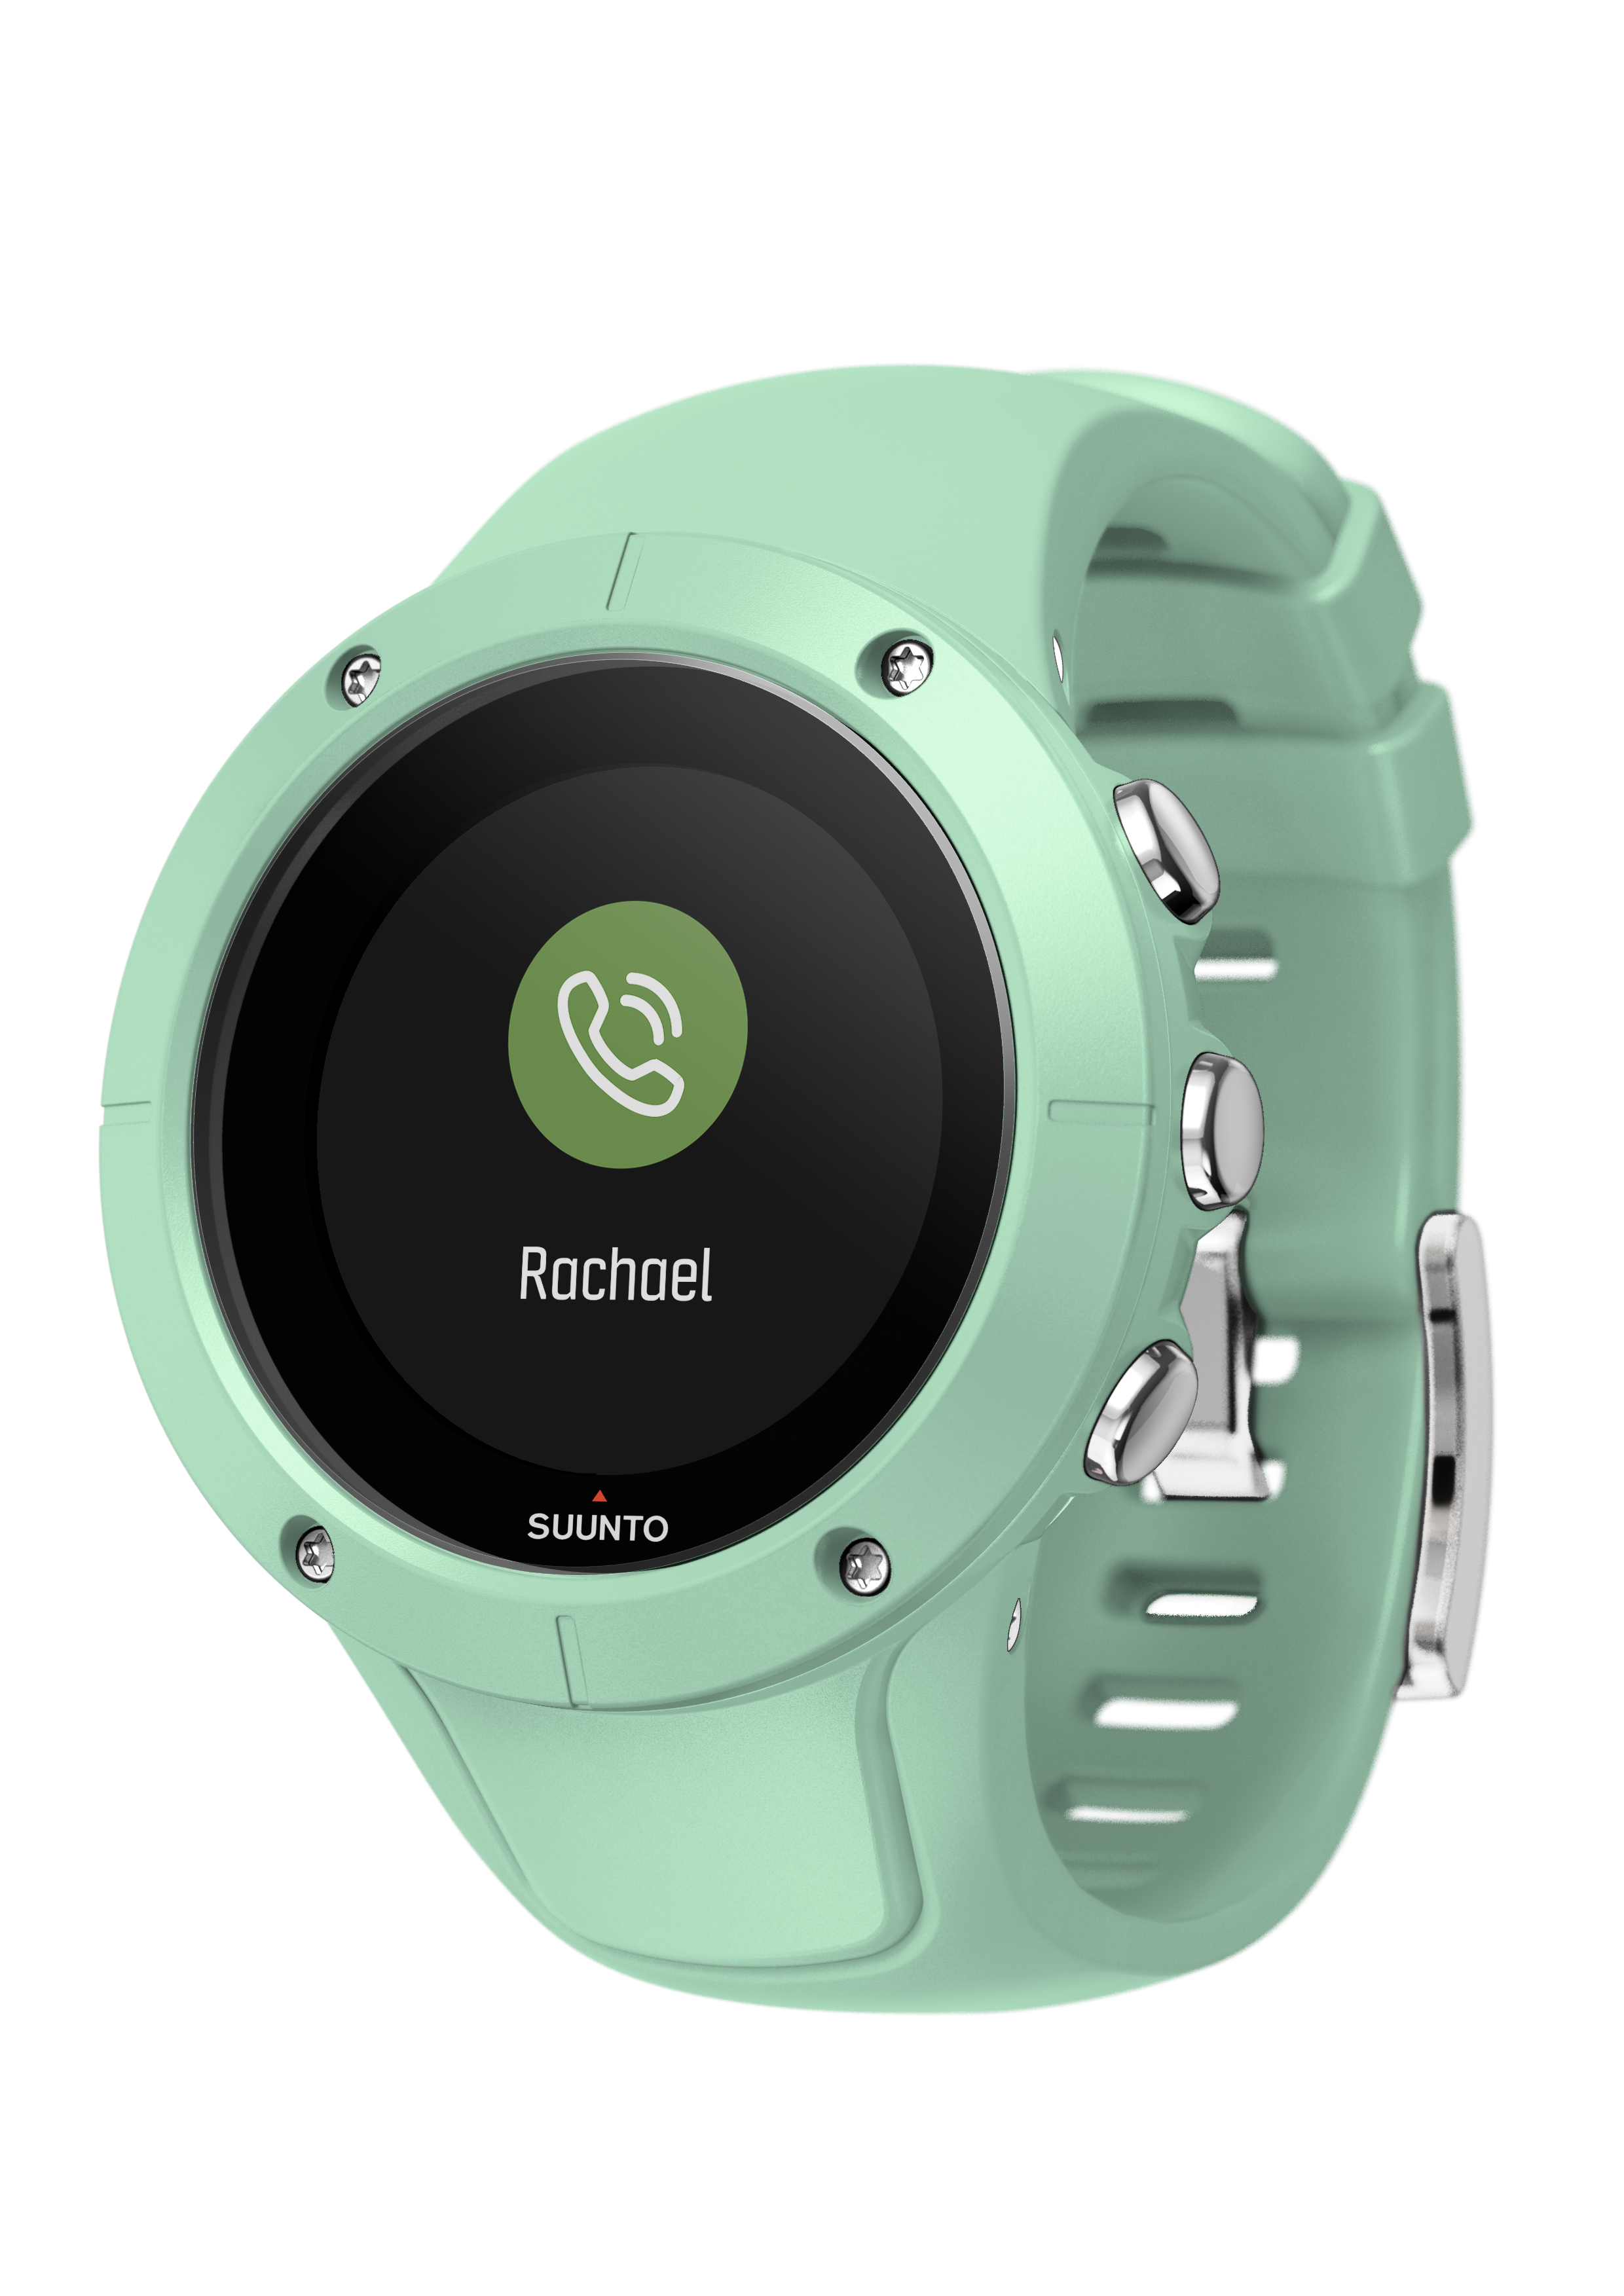 SS022670000 - SPARTAN - Trainer Wrist HR Ocean - Perspective View_NOT-Incoming-call.png